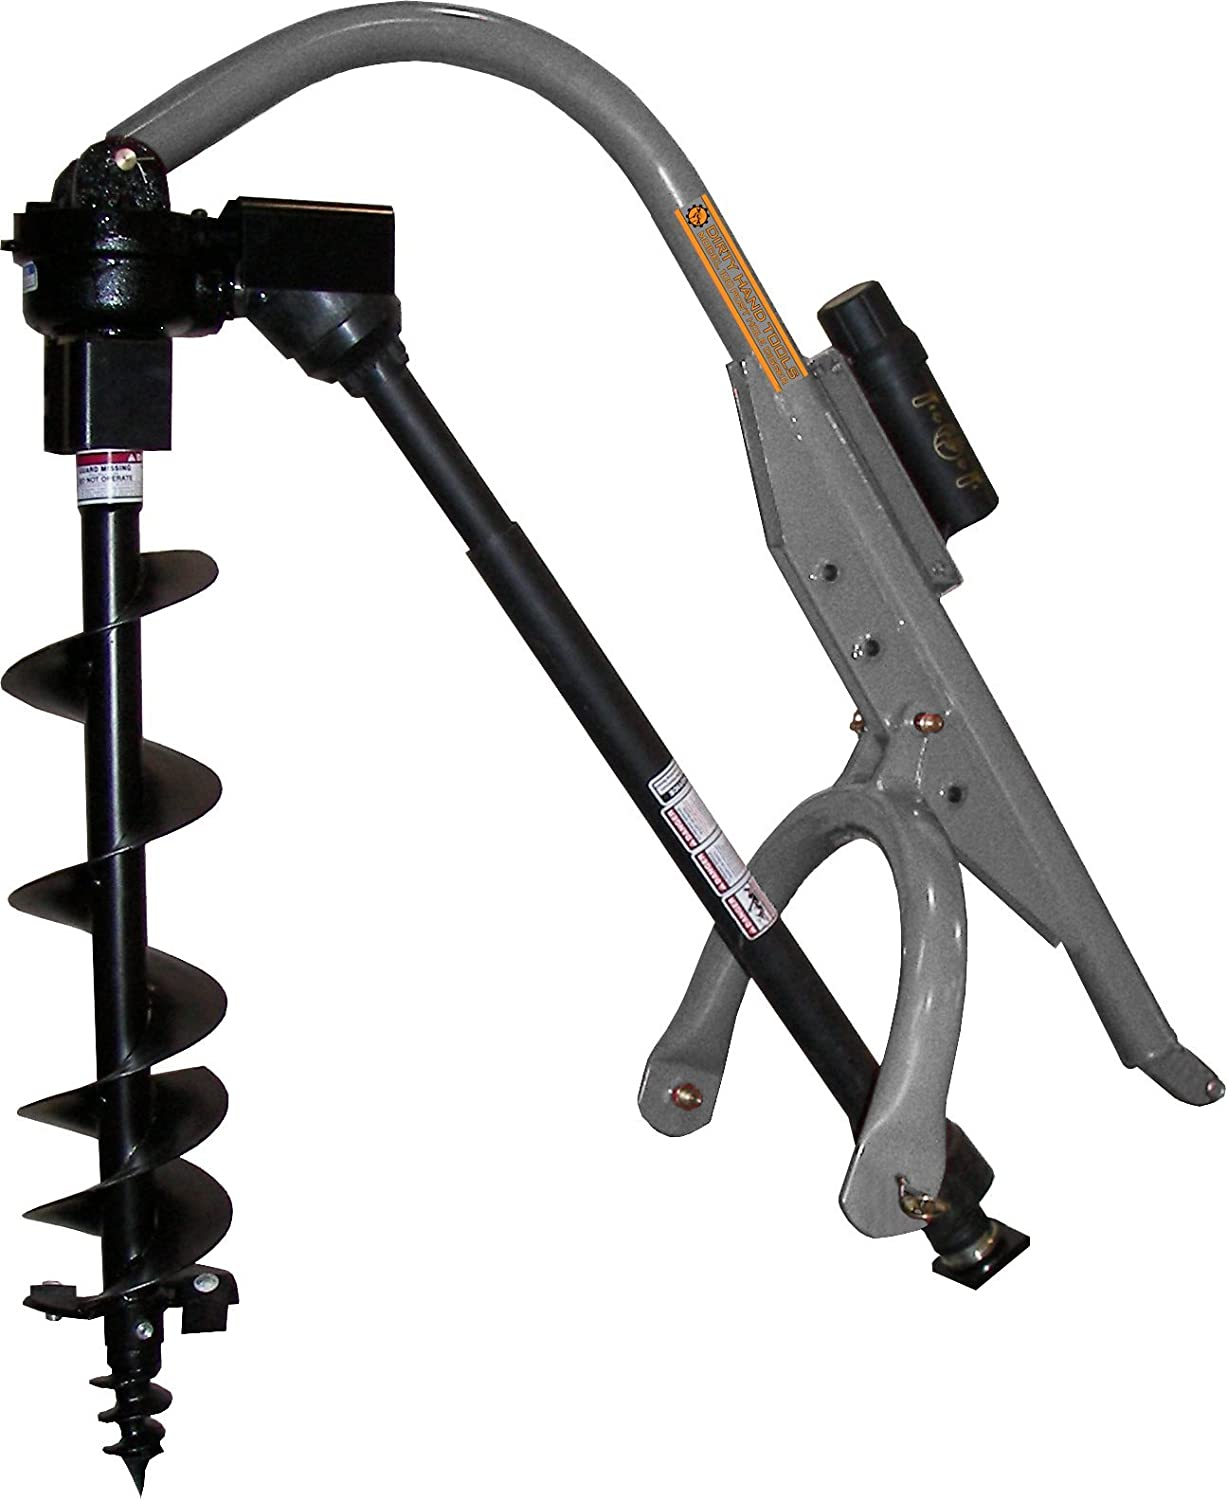 Dirty Hand Tools 100623 Model 90 Three-point Hitch Post Hole Digger For 6 - 12' Augers Frictionless World